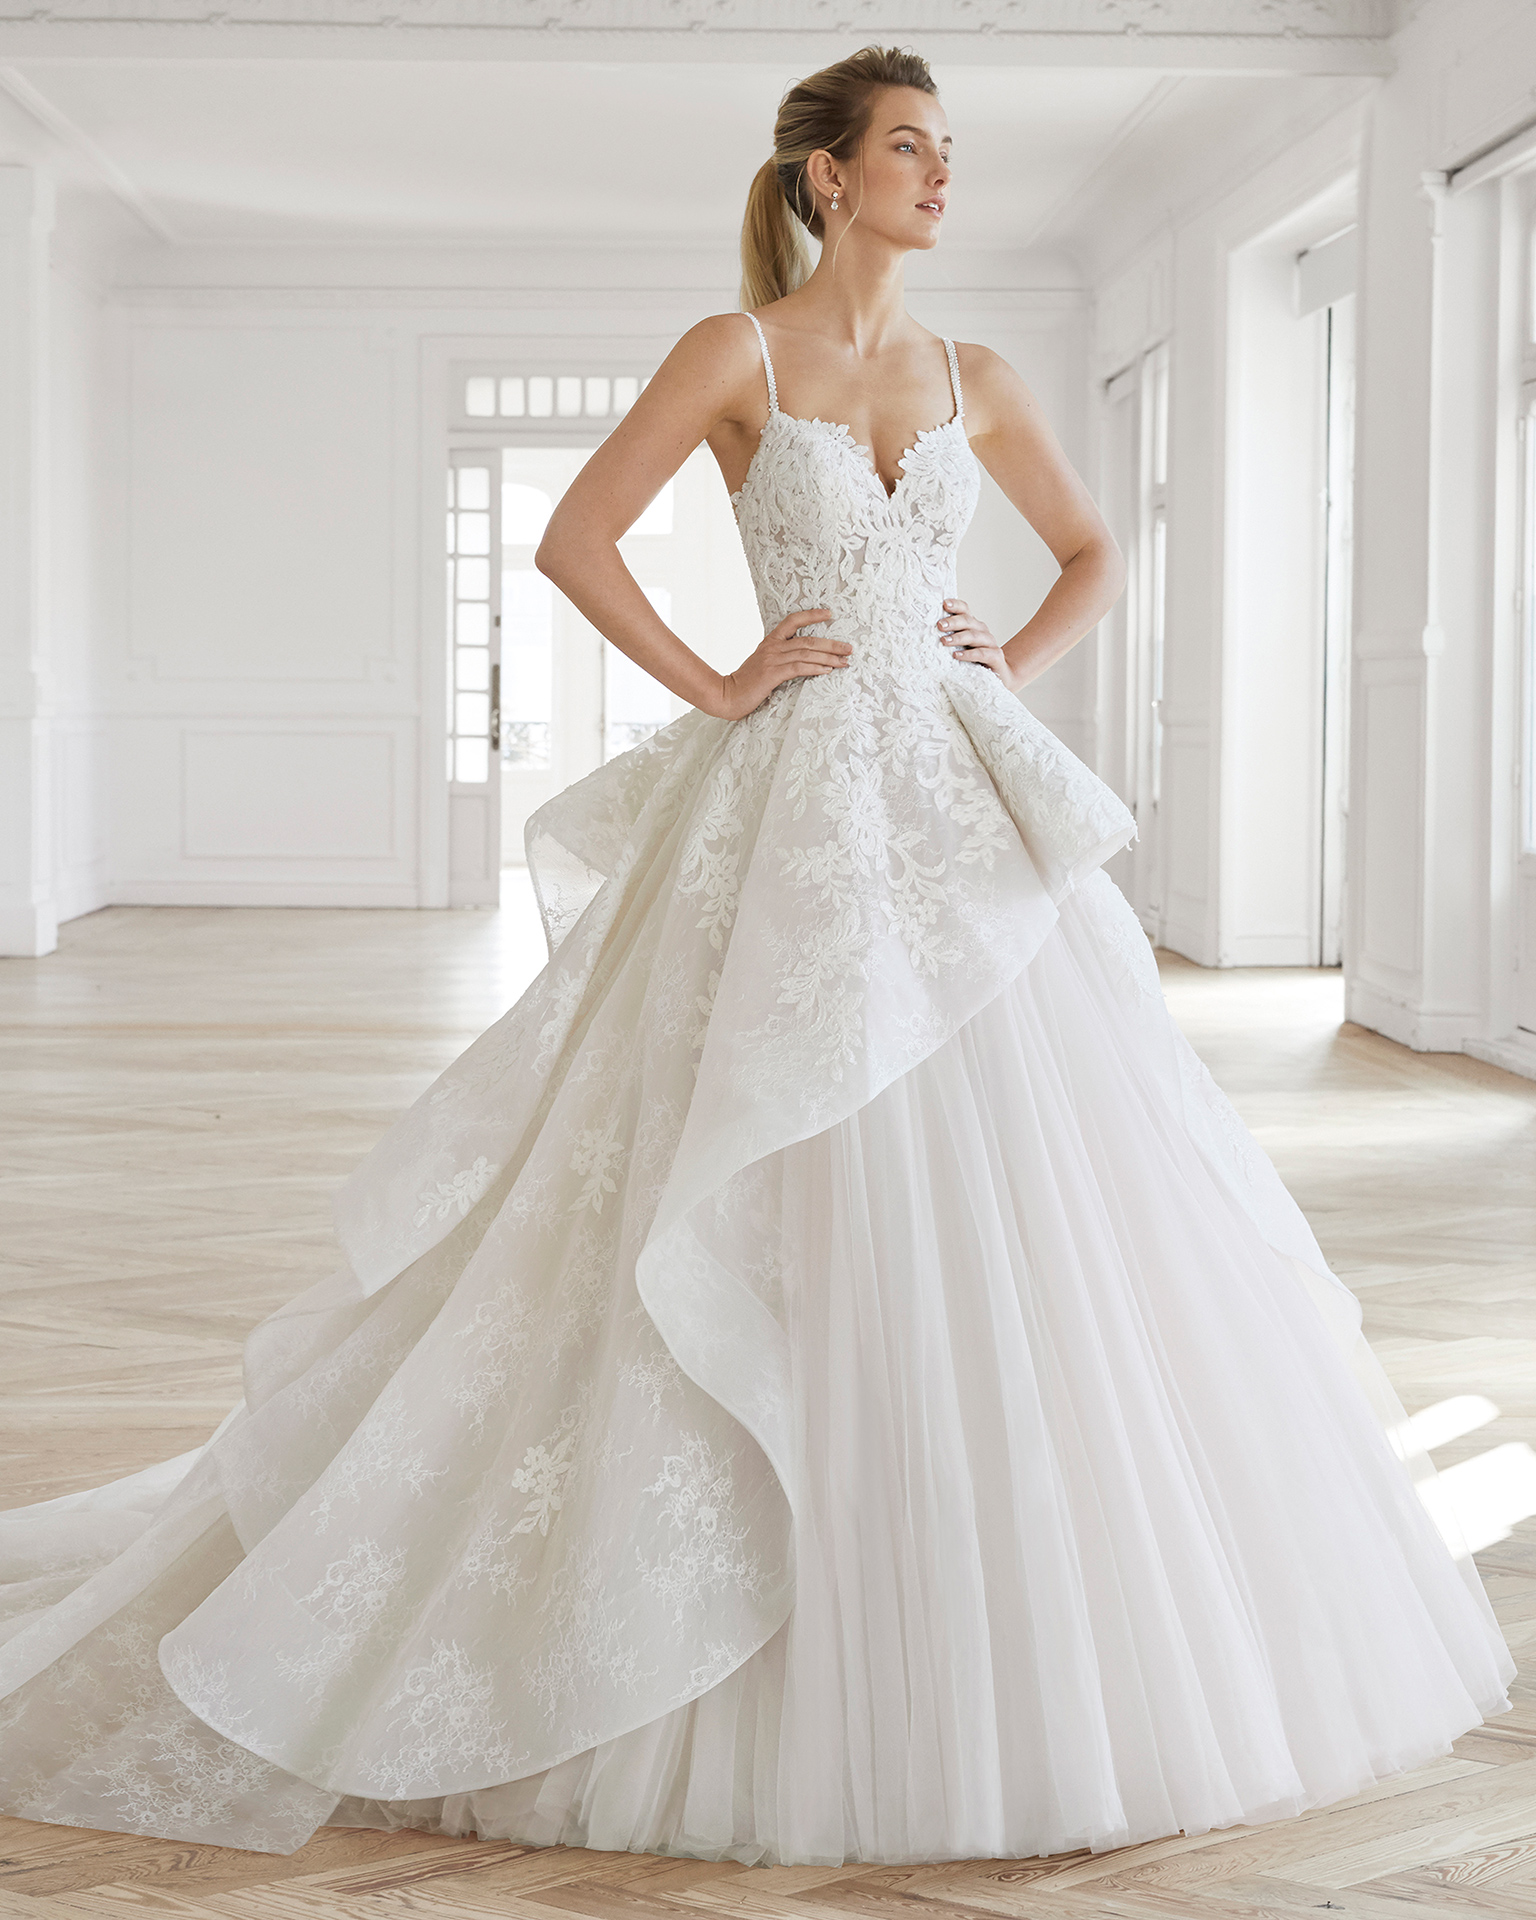 Princess-style beaded lace and tulle wedding dress. Sweetheart neckline and full skirt. Available in natural/rose and natural. 2019 AIRE BARCELONA Collection.